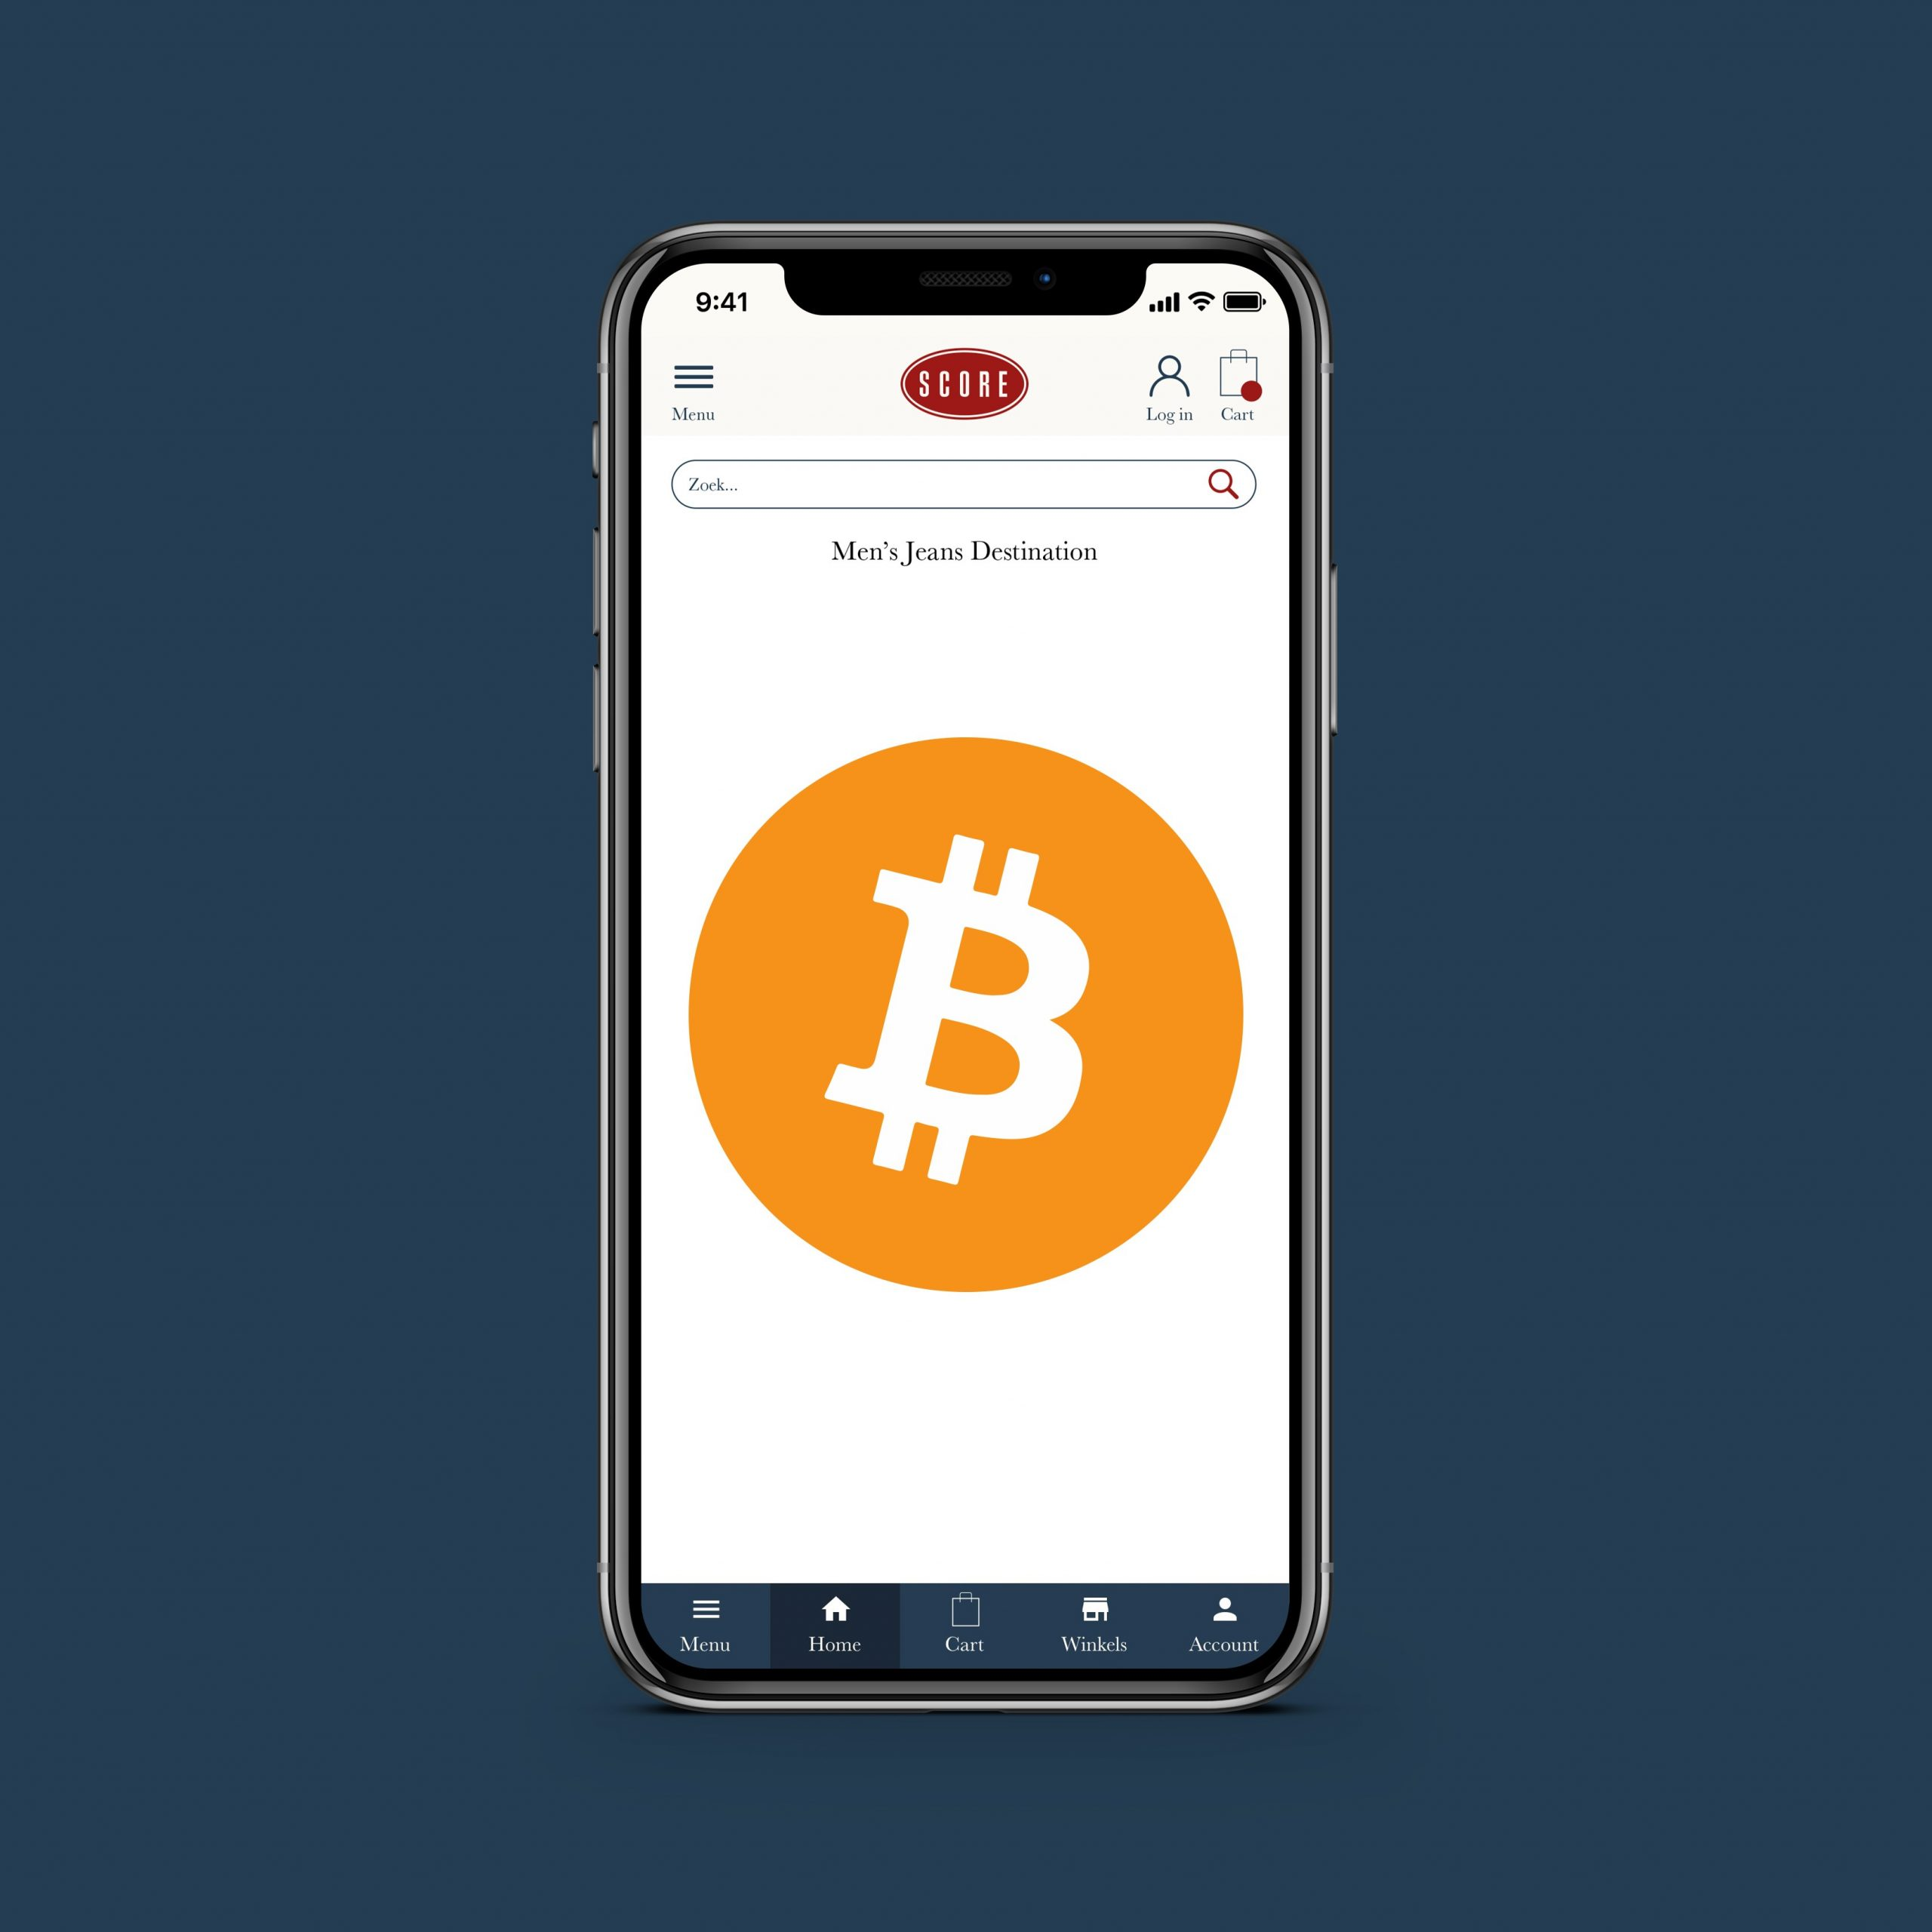 SCORE launches digital payment with Crypto coins